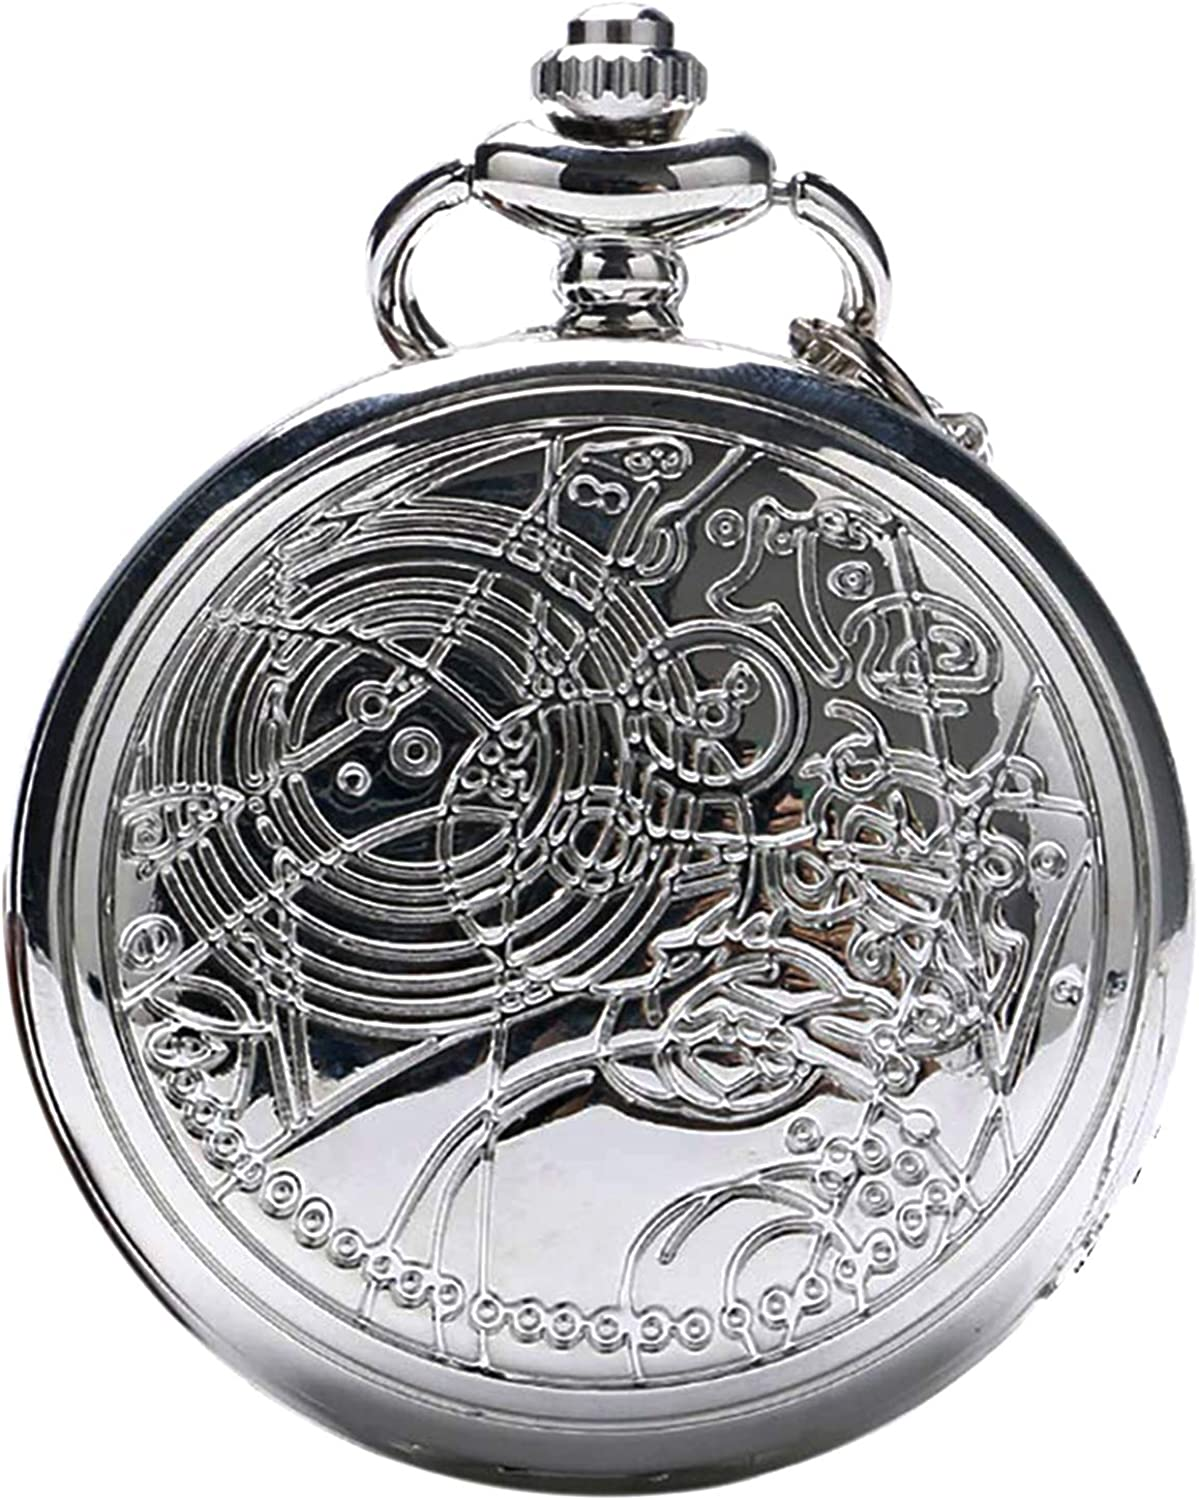 Vintage Doctor Who Retro Dr. Who Quartz Pocket Watch for Gifts